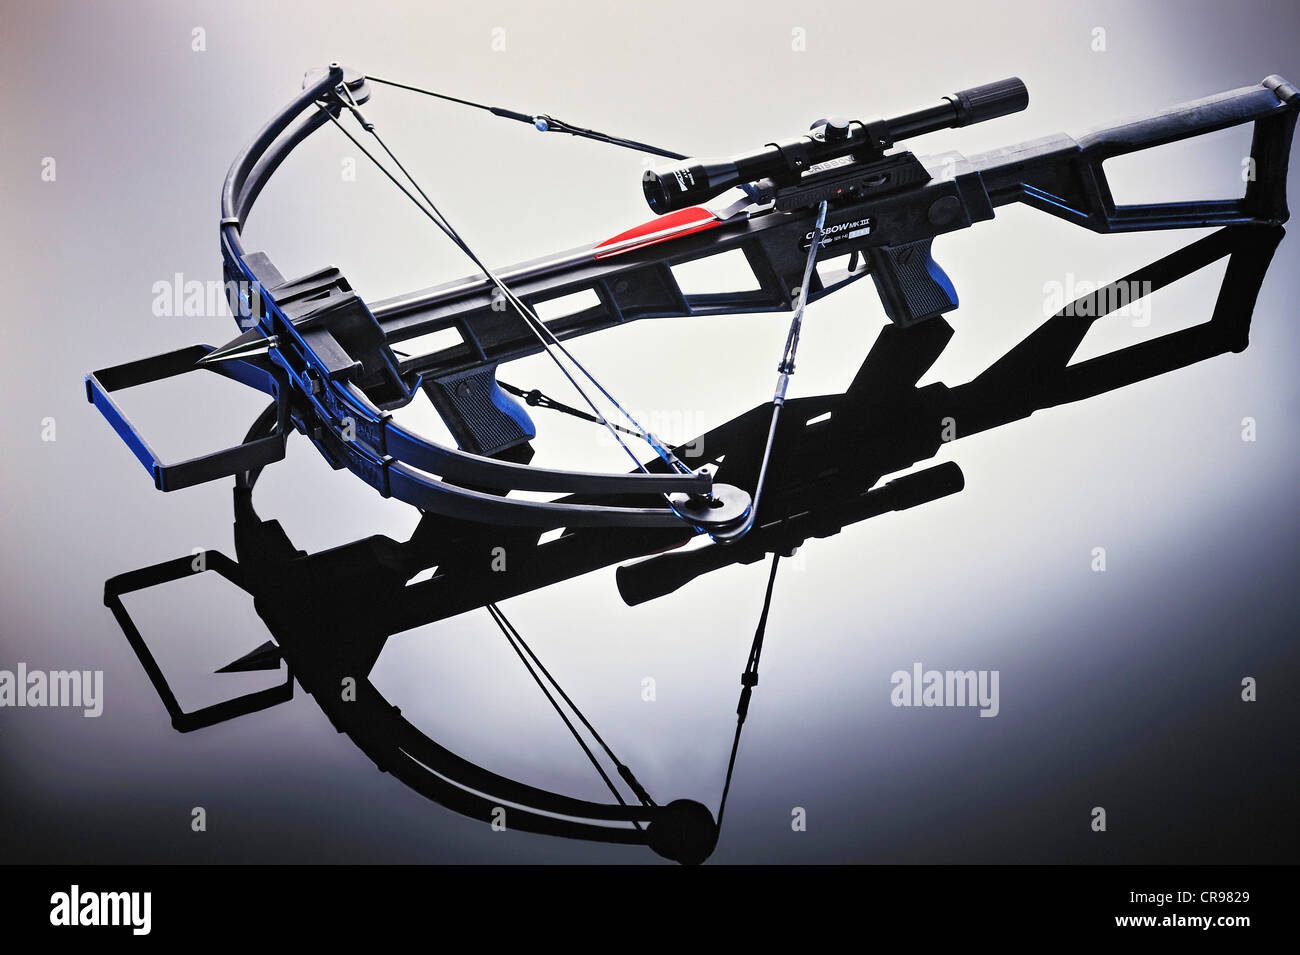 Use Of The Crossbow Stock Photos & Use Of The Crossbow Stock